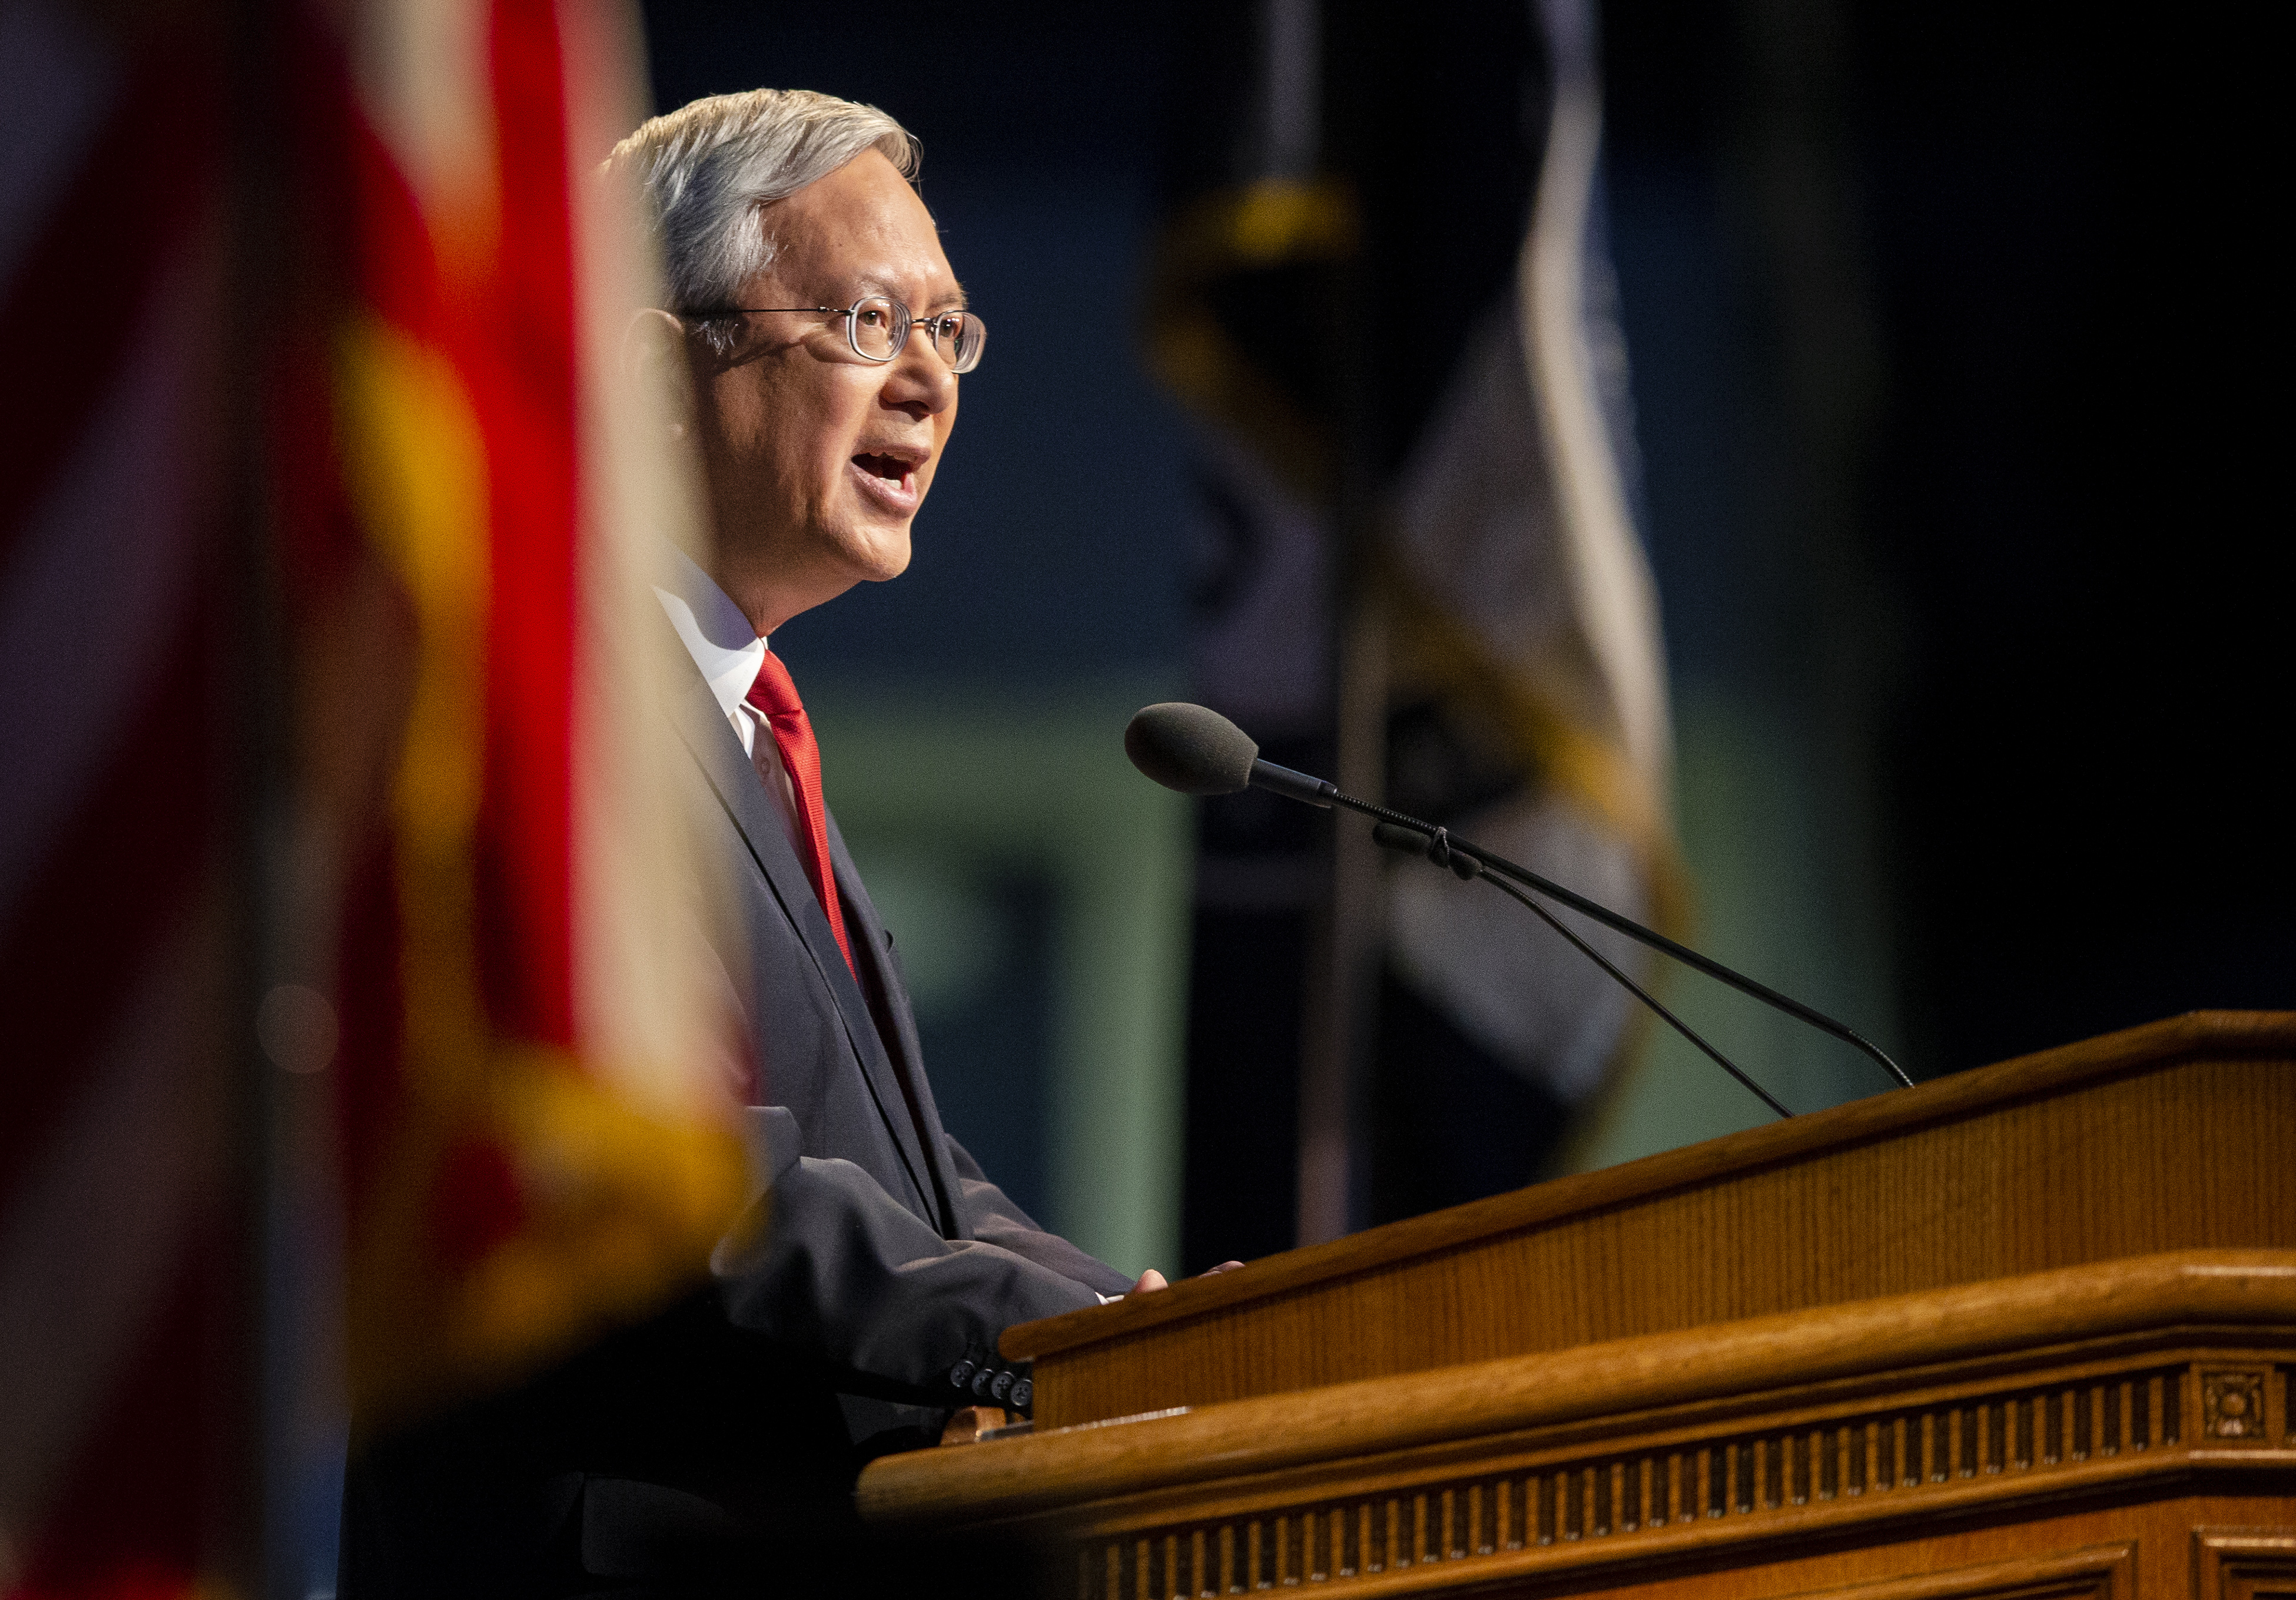 Elder Gerrit W. Gong of the Quorum of the Twelve Apostles speaks at BYU during a campus devotional on Tuesday, Oct. 16, 2018.